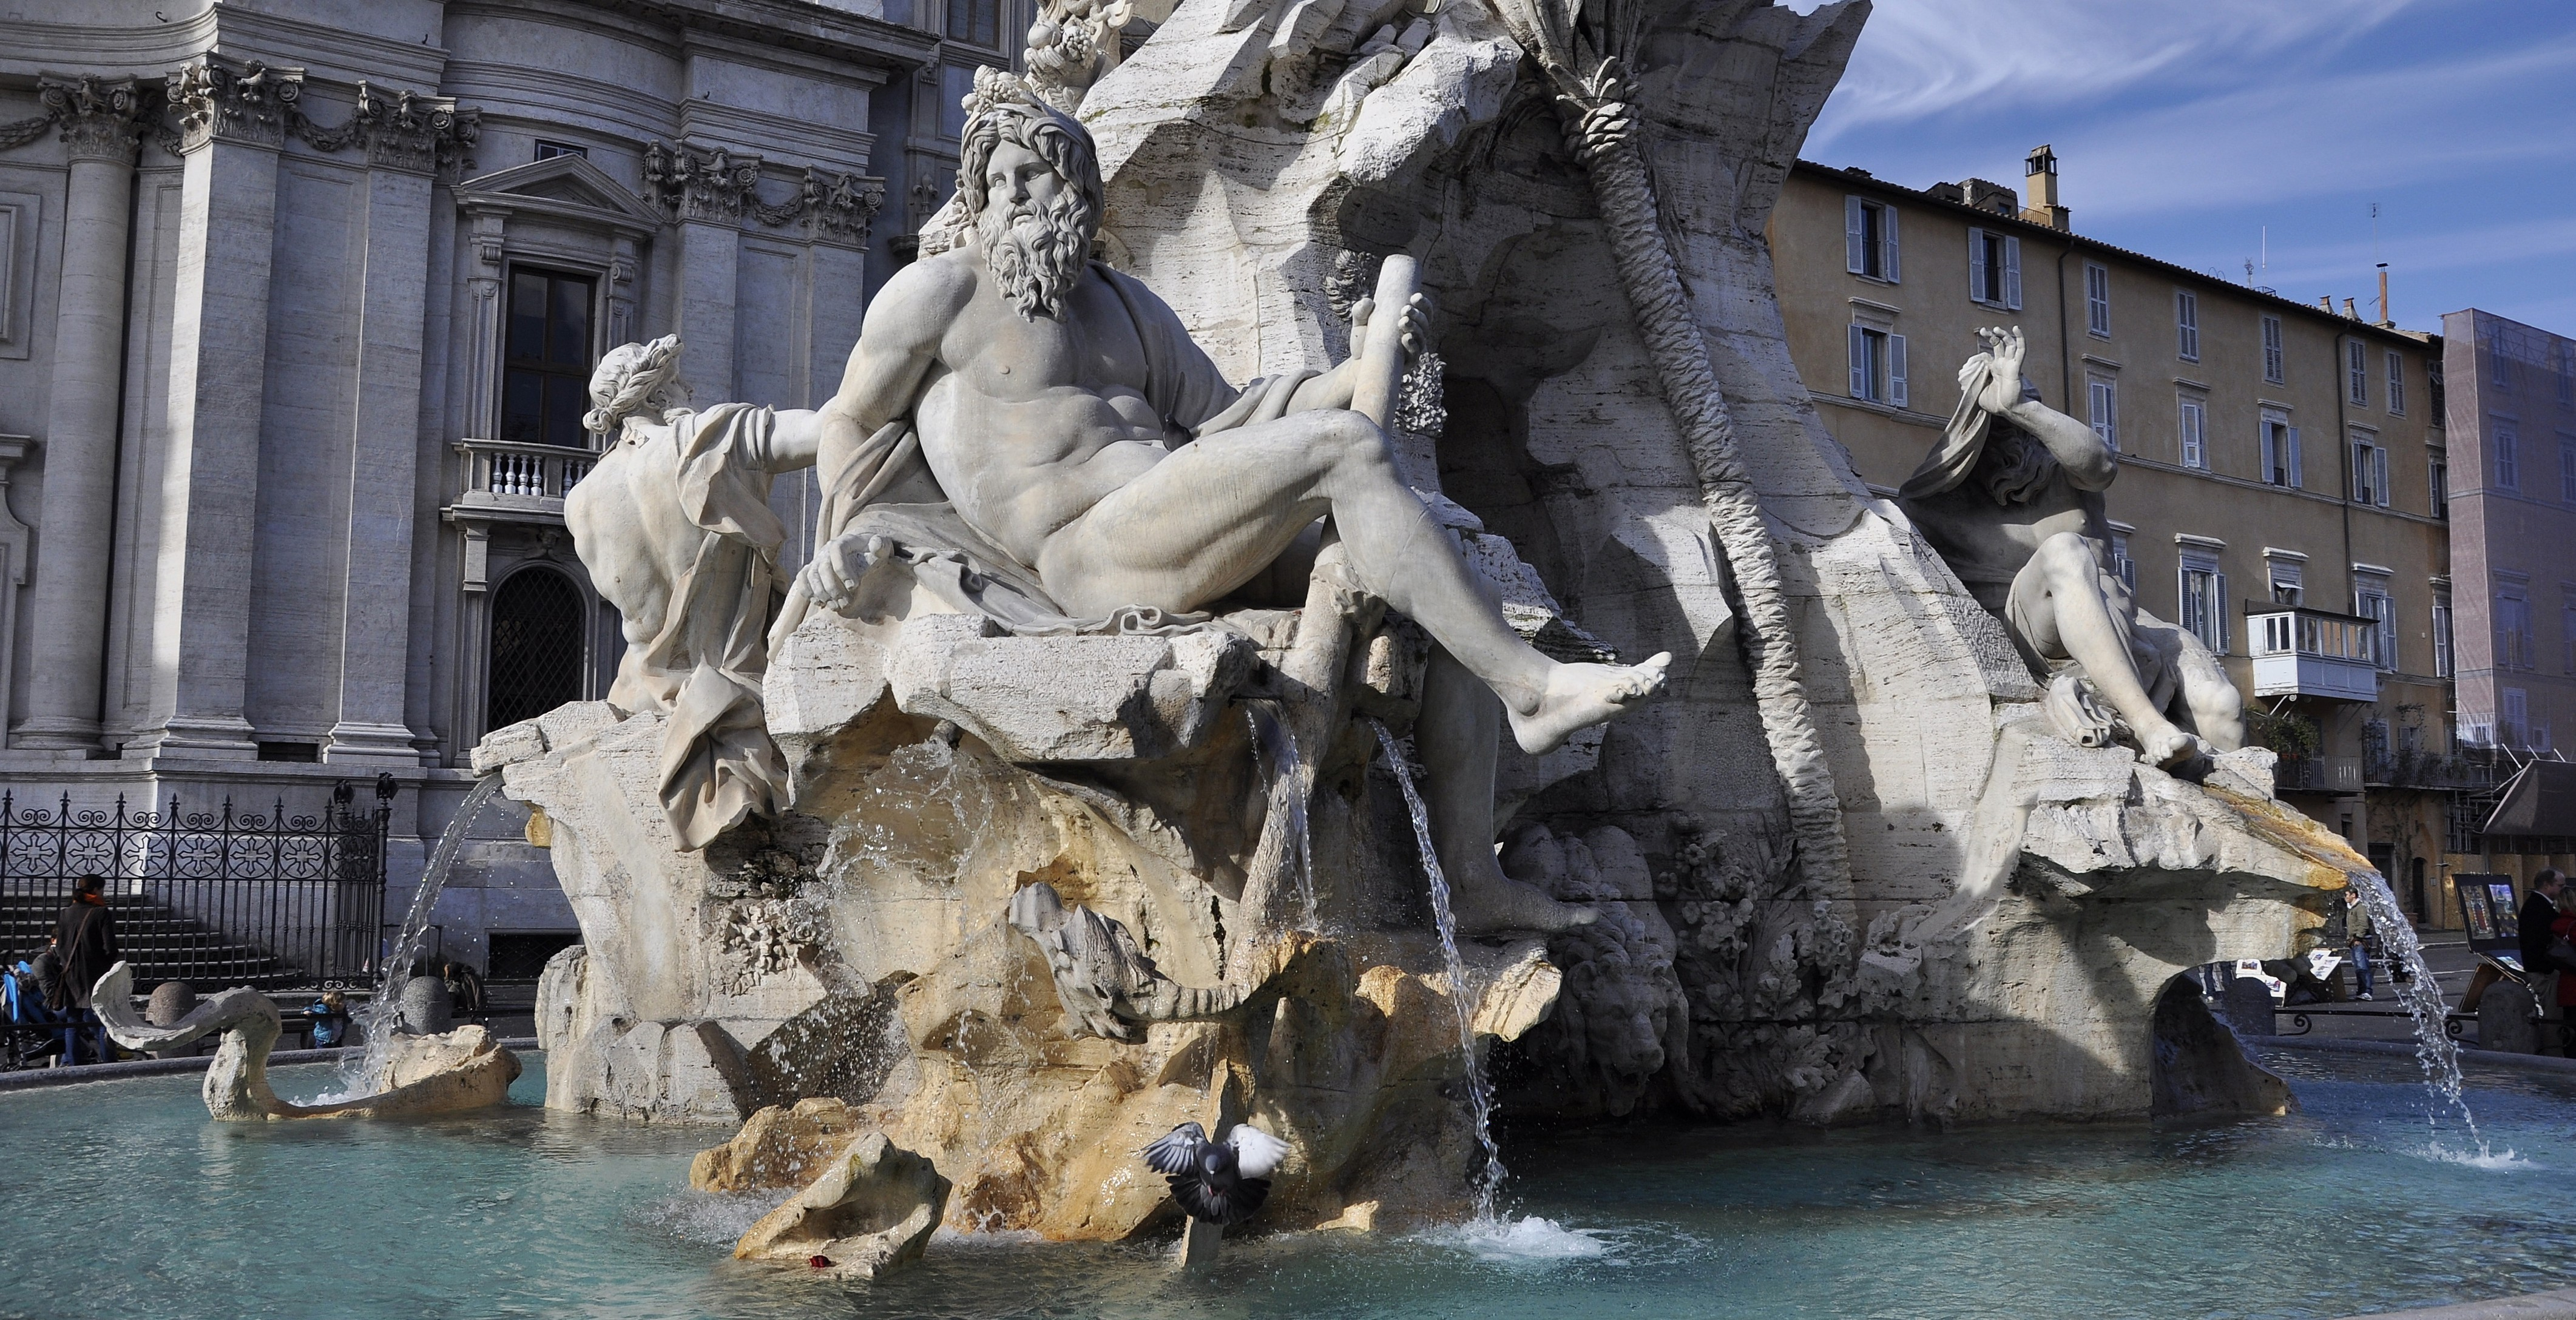 Bernini: The Artist Who Breathed Life into Marble